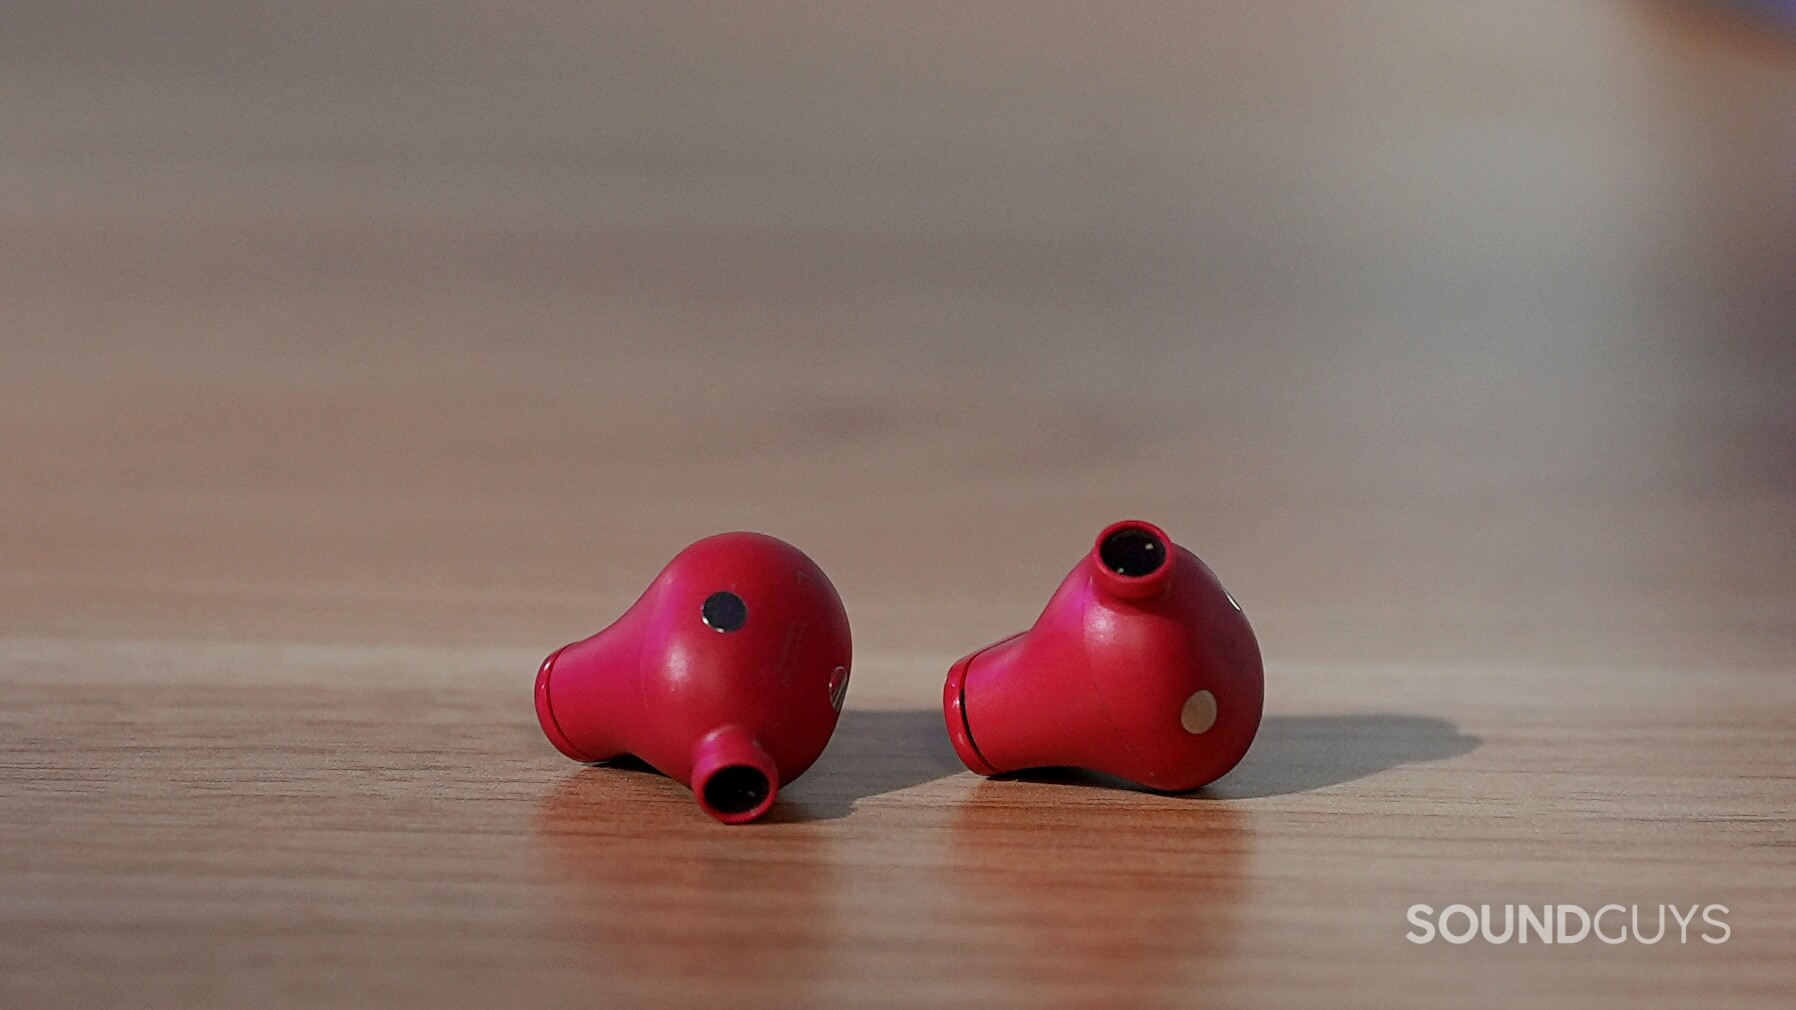 Beats Studio Buds noise cancelling true wireless earphones without the ear tips on to show the driver grilles.